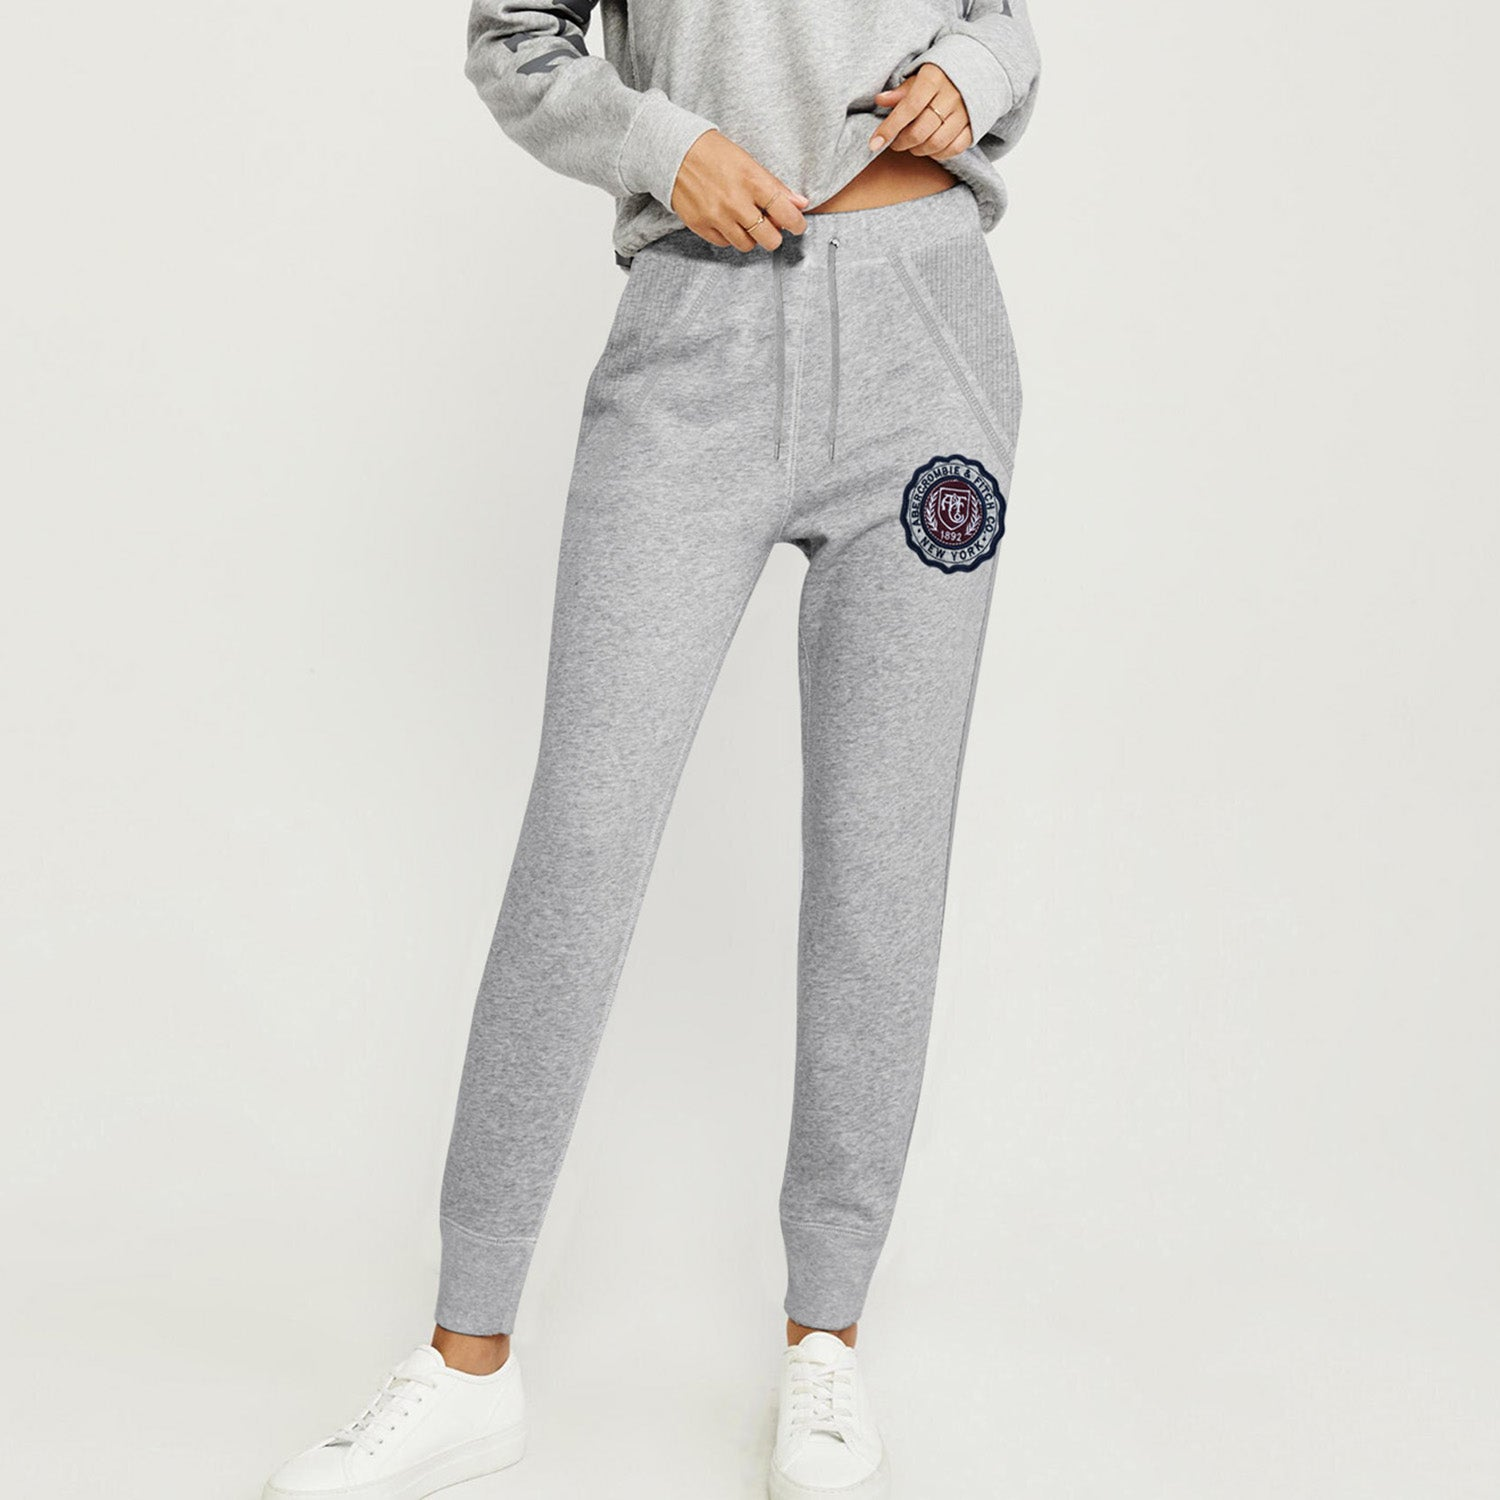 A&F Fleece Slim Fit Navy Maroon & Grey Embroidery Jogger Trouser For Ladies-Grey Melange-BE9731